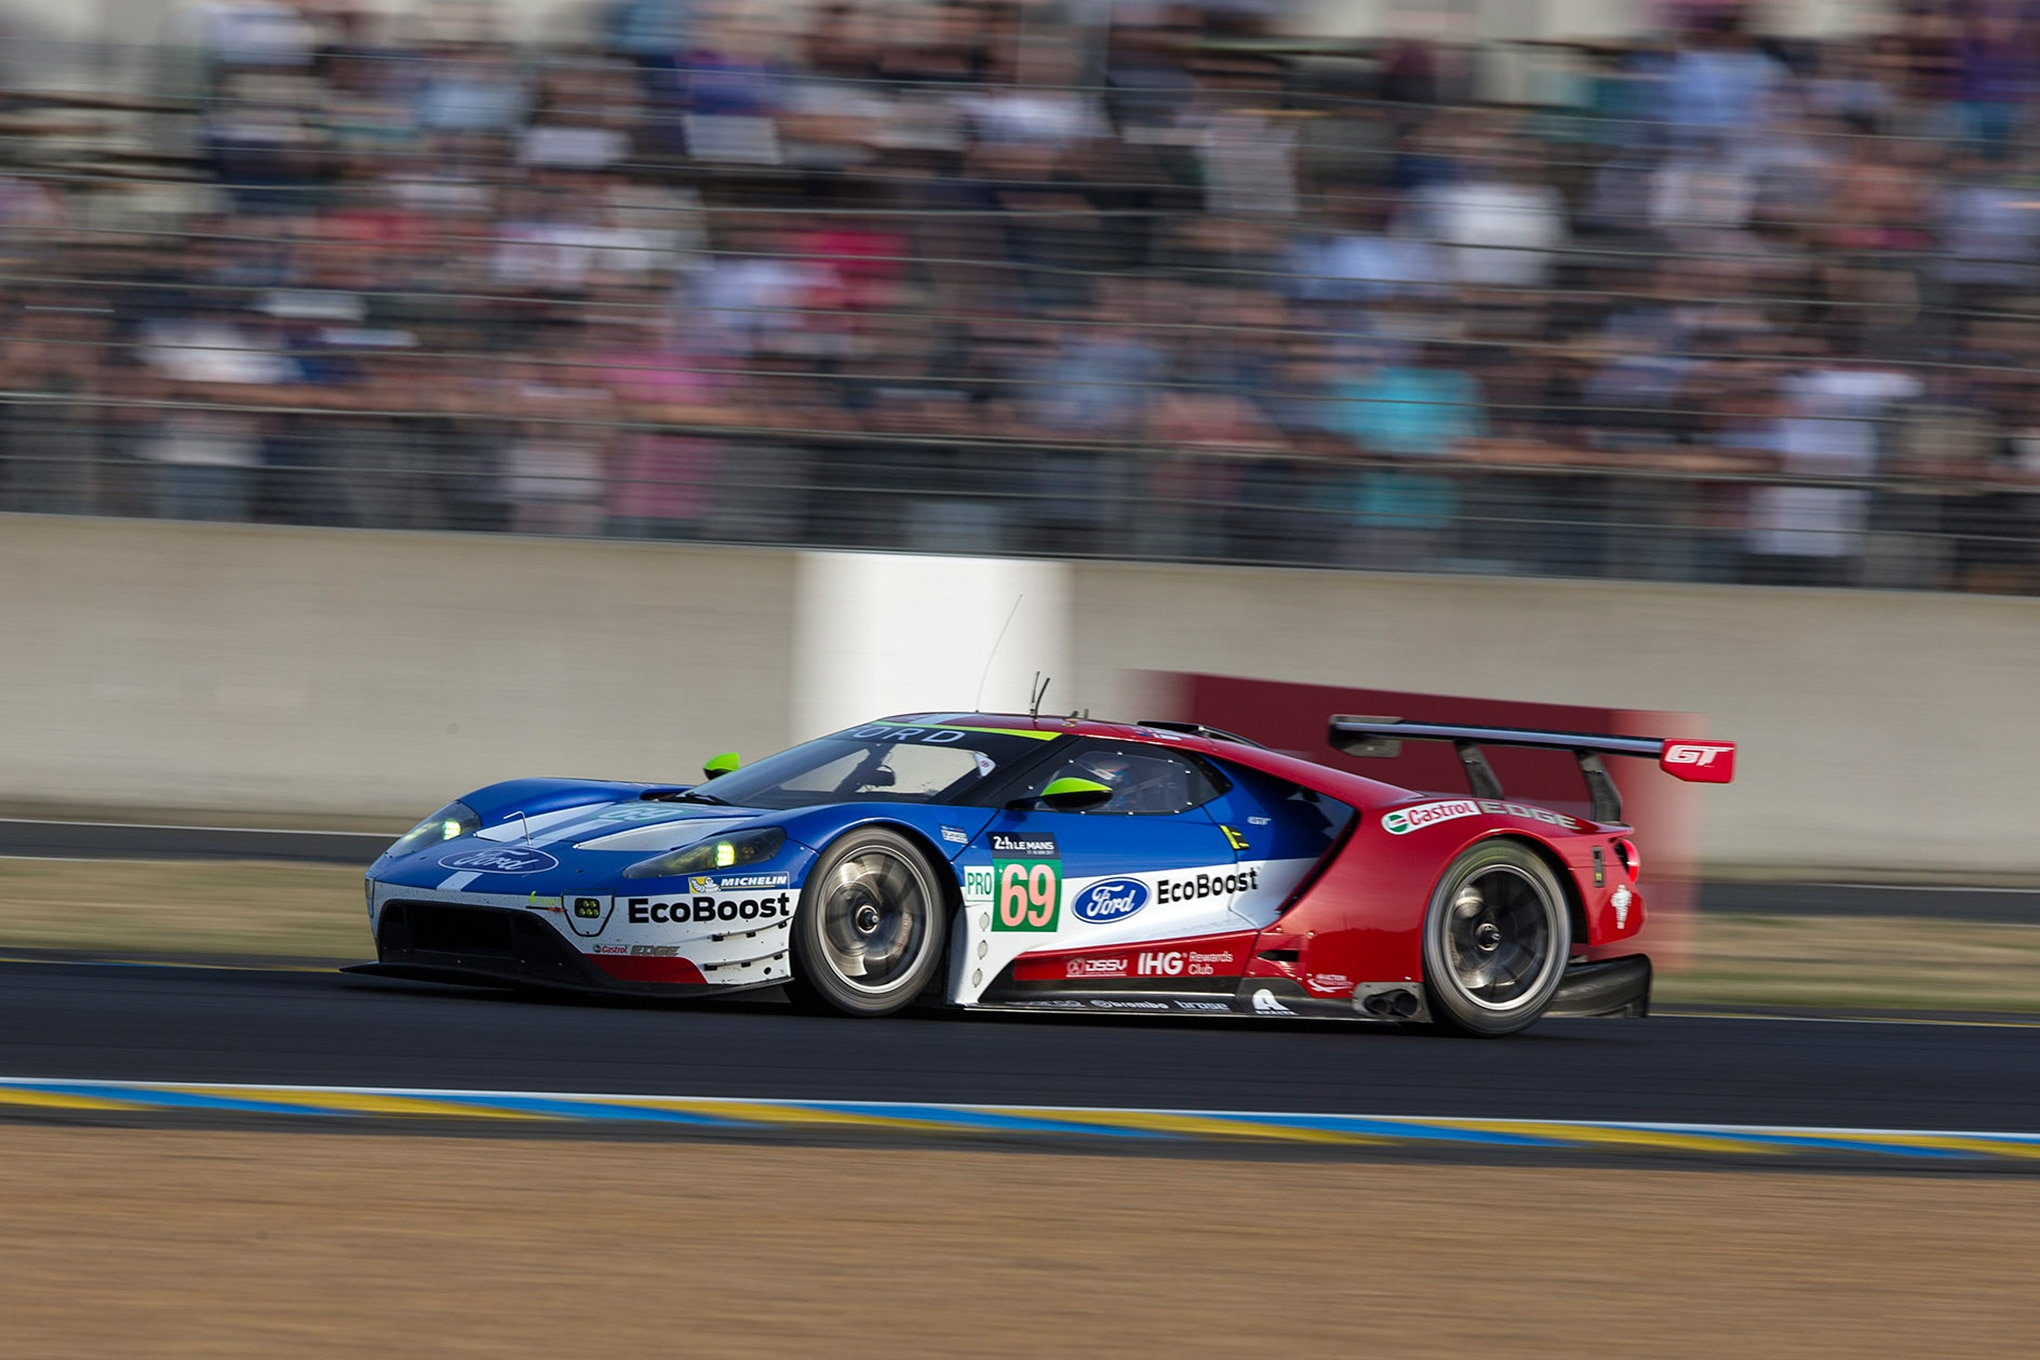 2017 24 hours of le mans race predictions ahead of the world u0027s